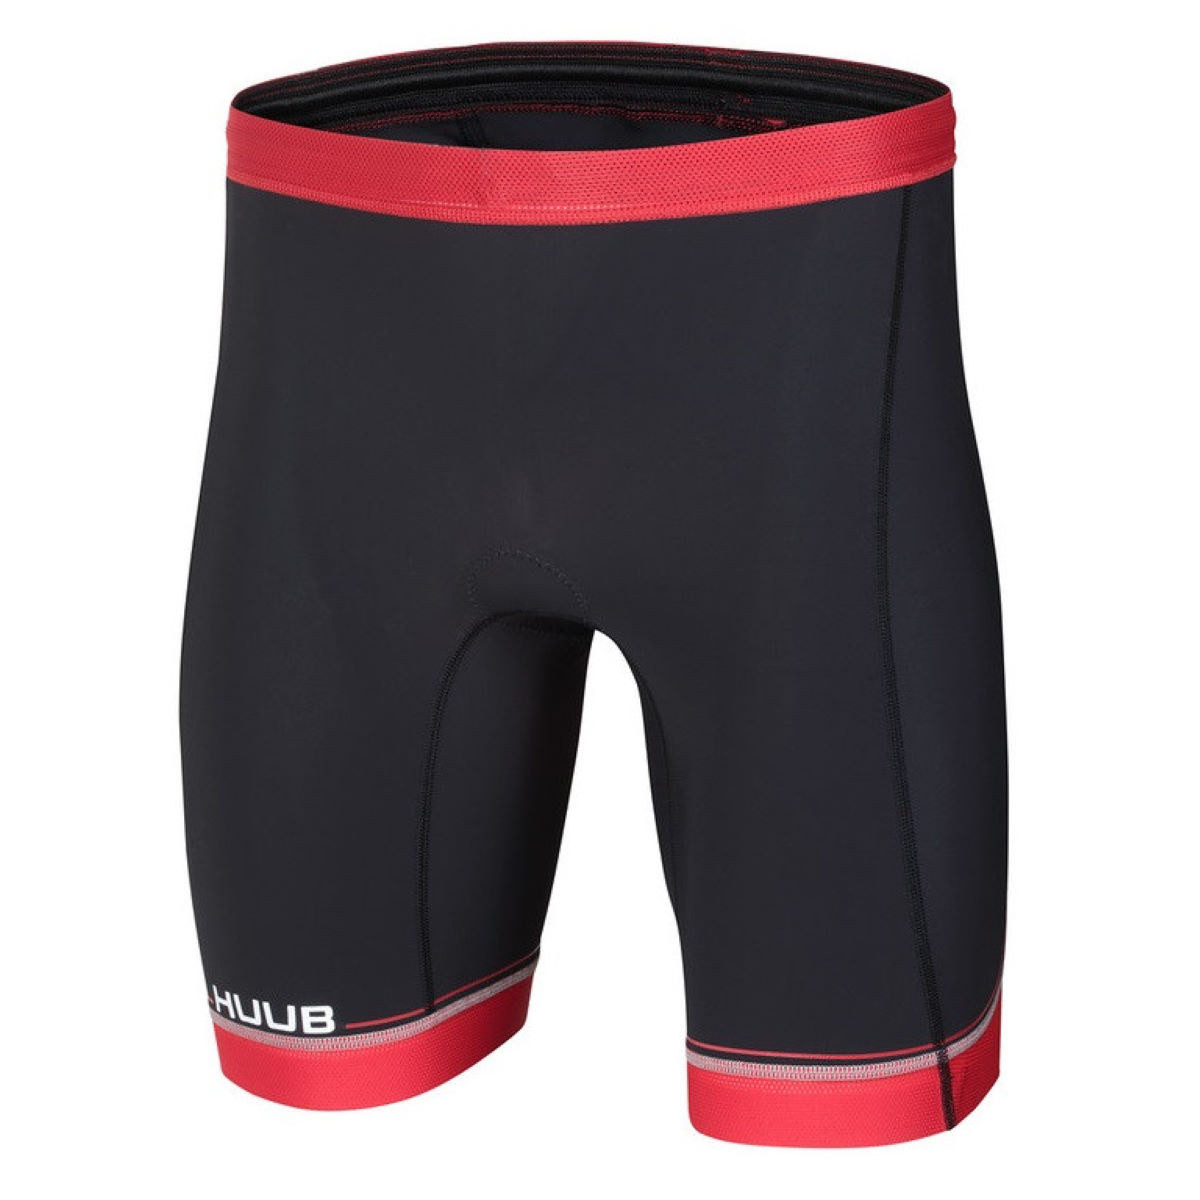 Cuissard court HUUB Core Tri - S Noir/Rouge Shorts de triathlon